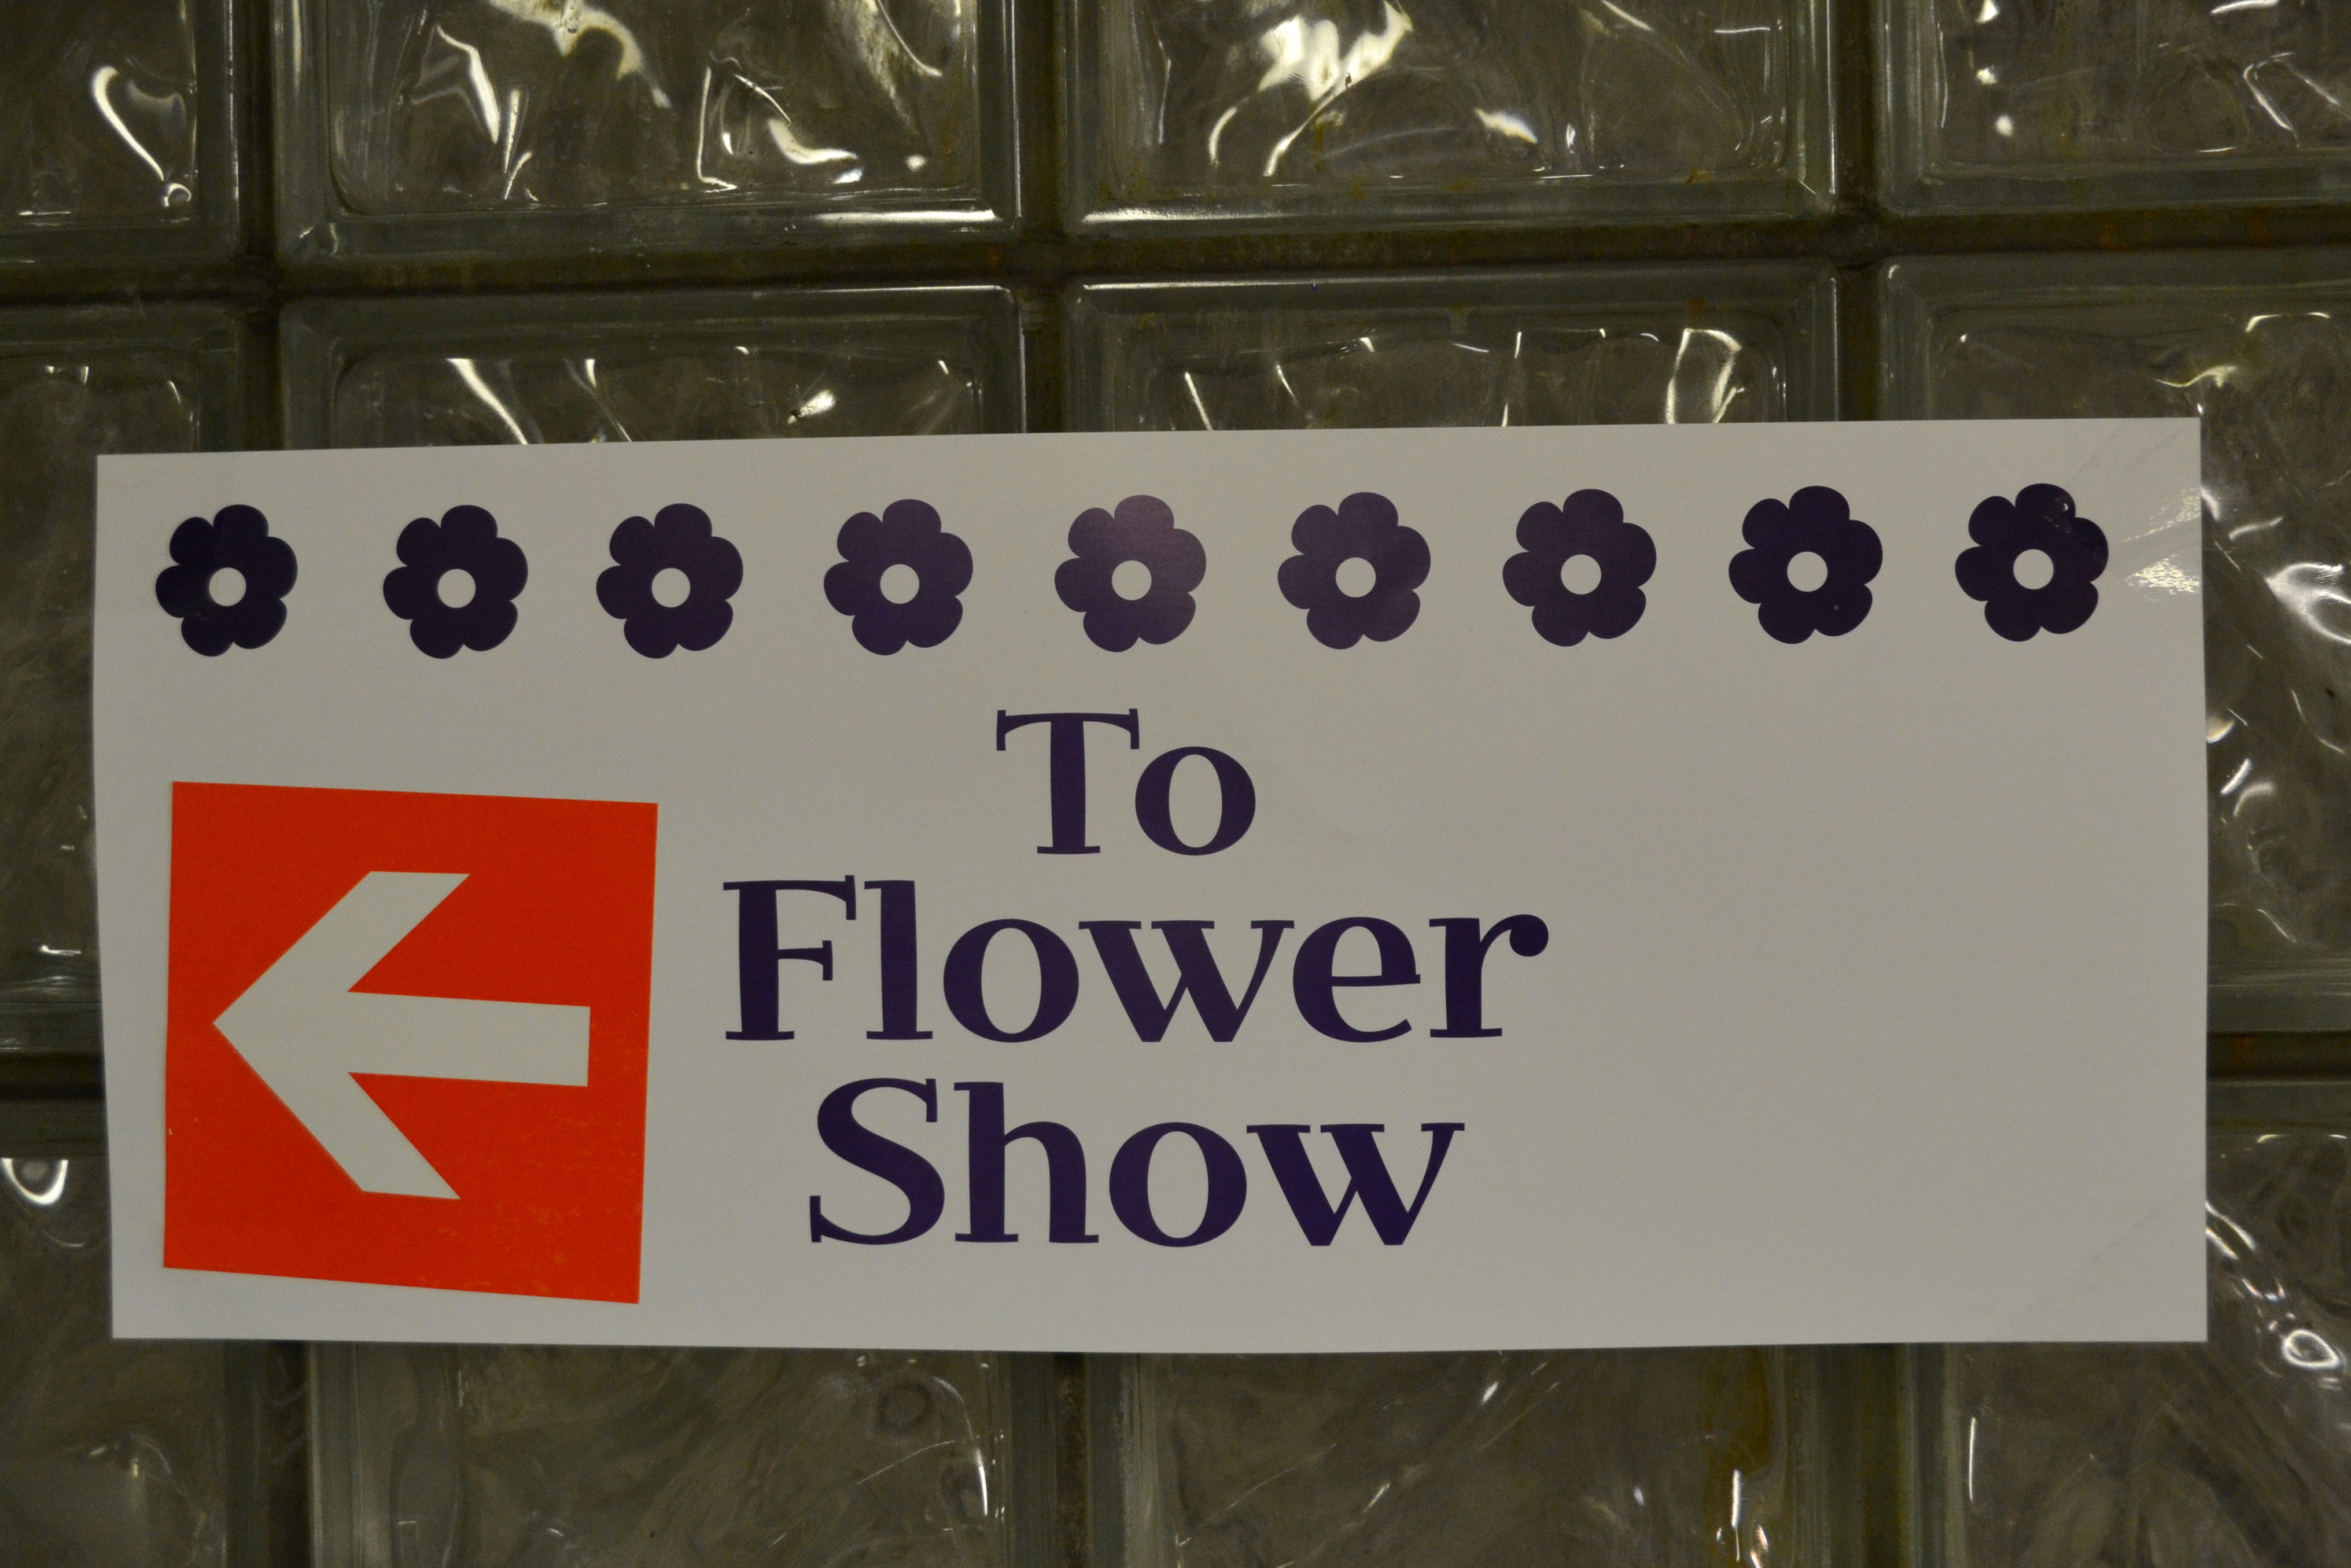 SEPTA added signs in nearby subway stations directing riders to the Flower Show